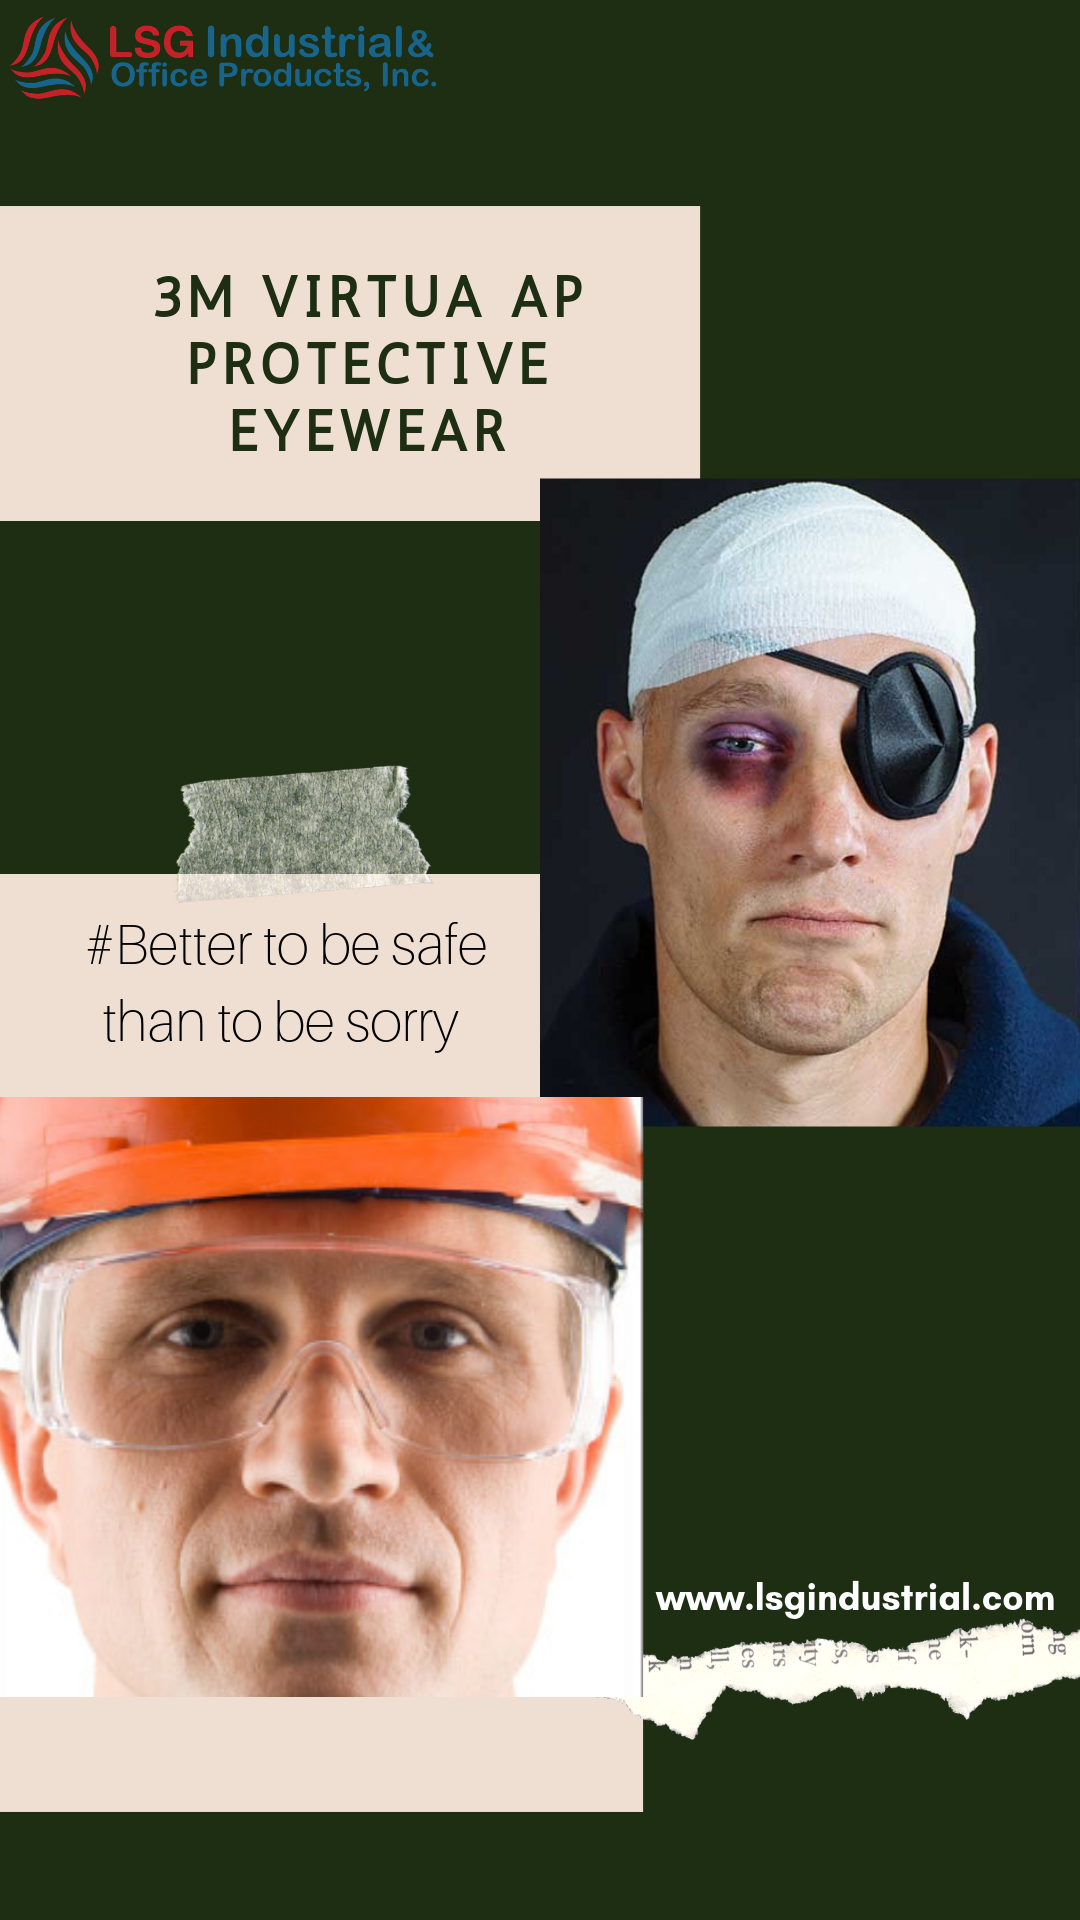 If you got eyes, you need safety glasses! LSG distributes